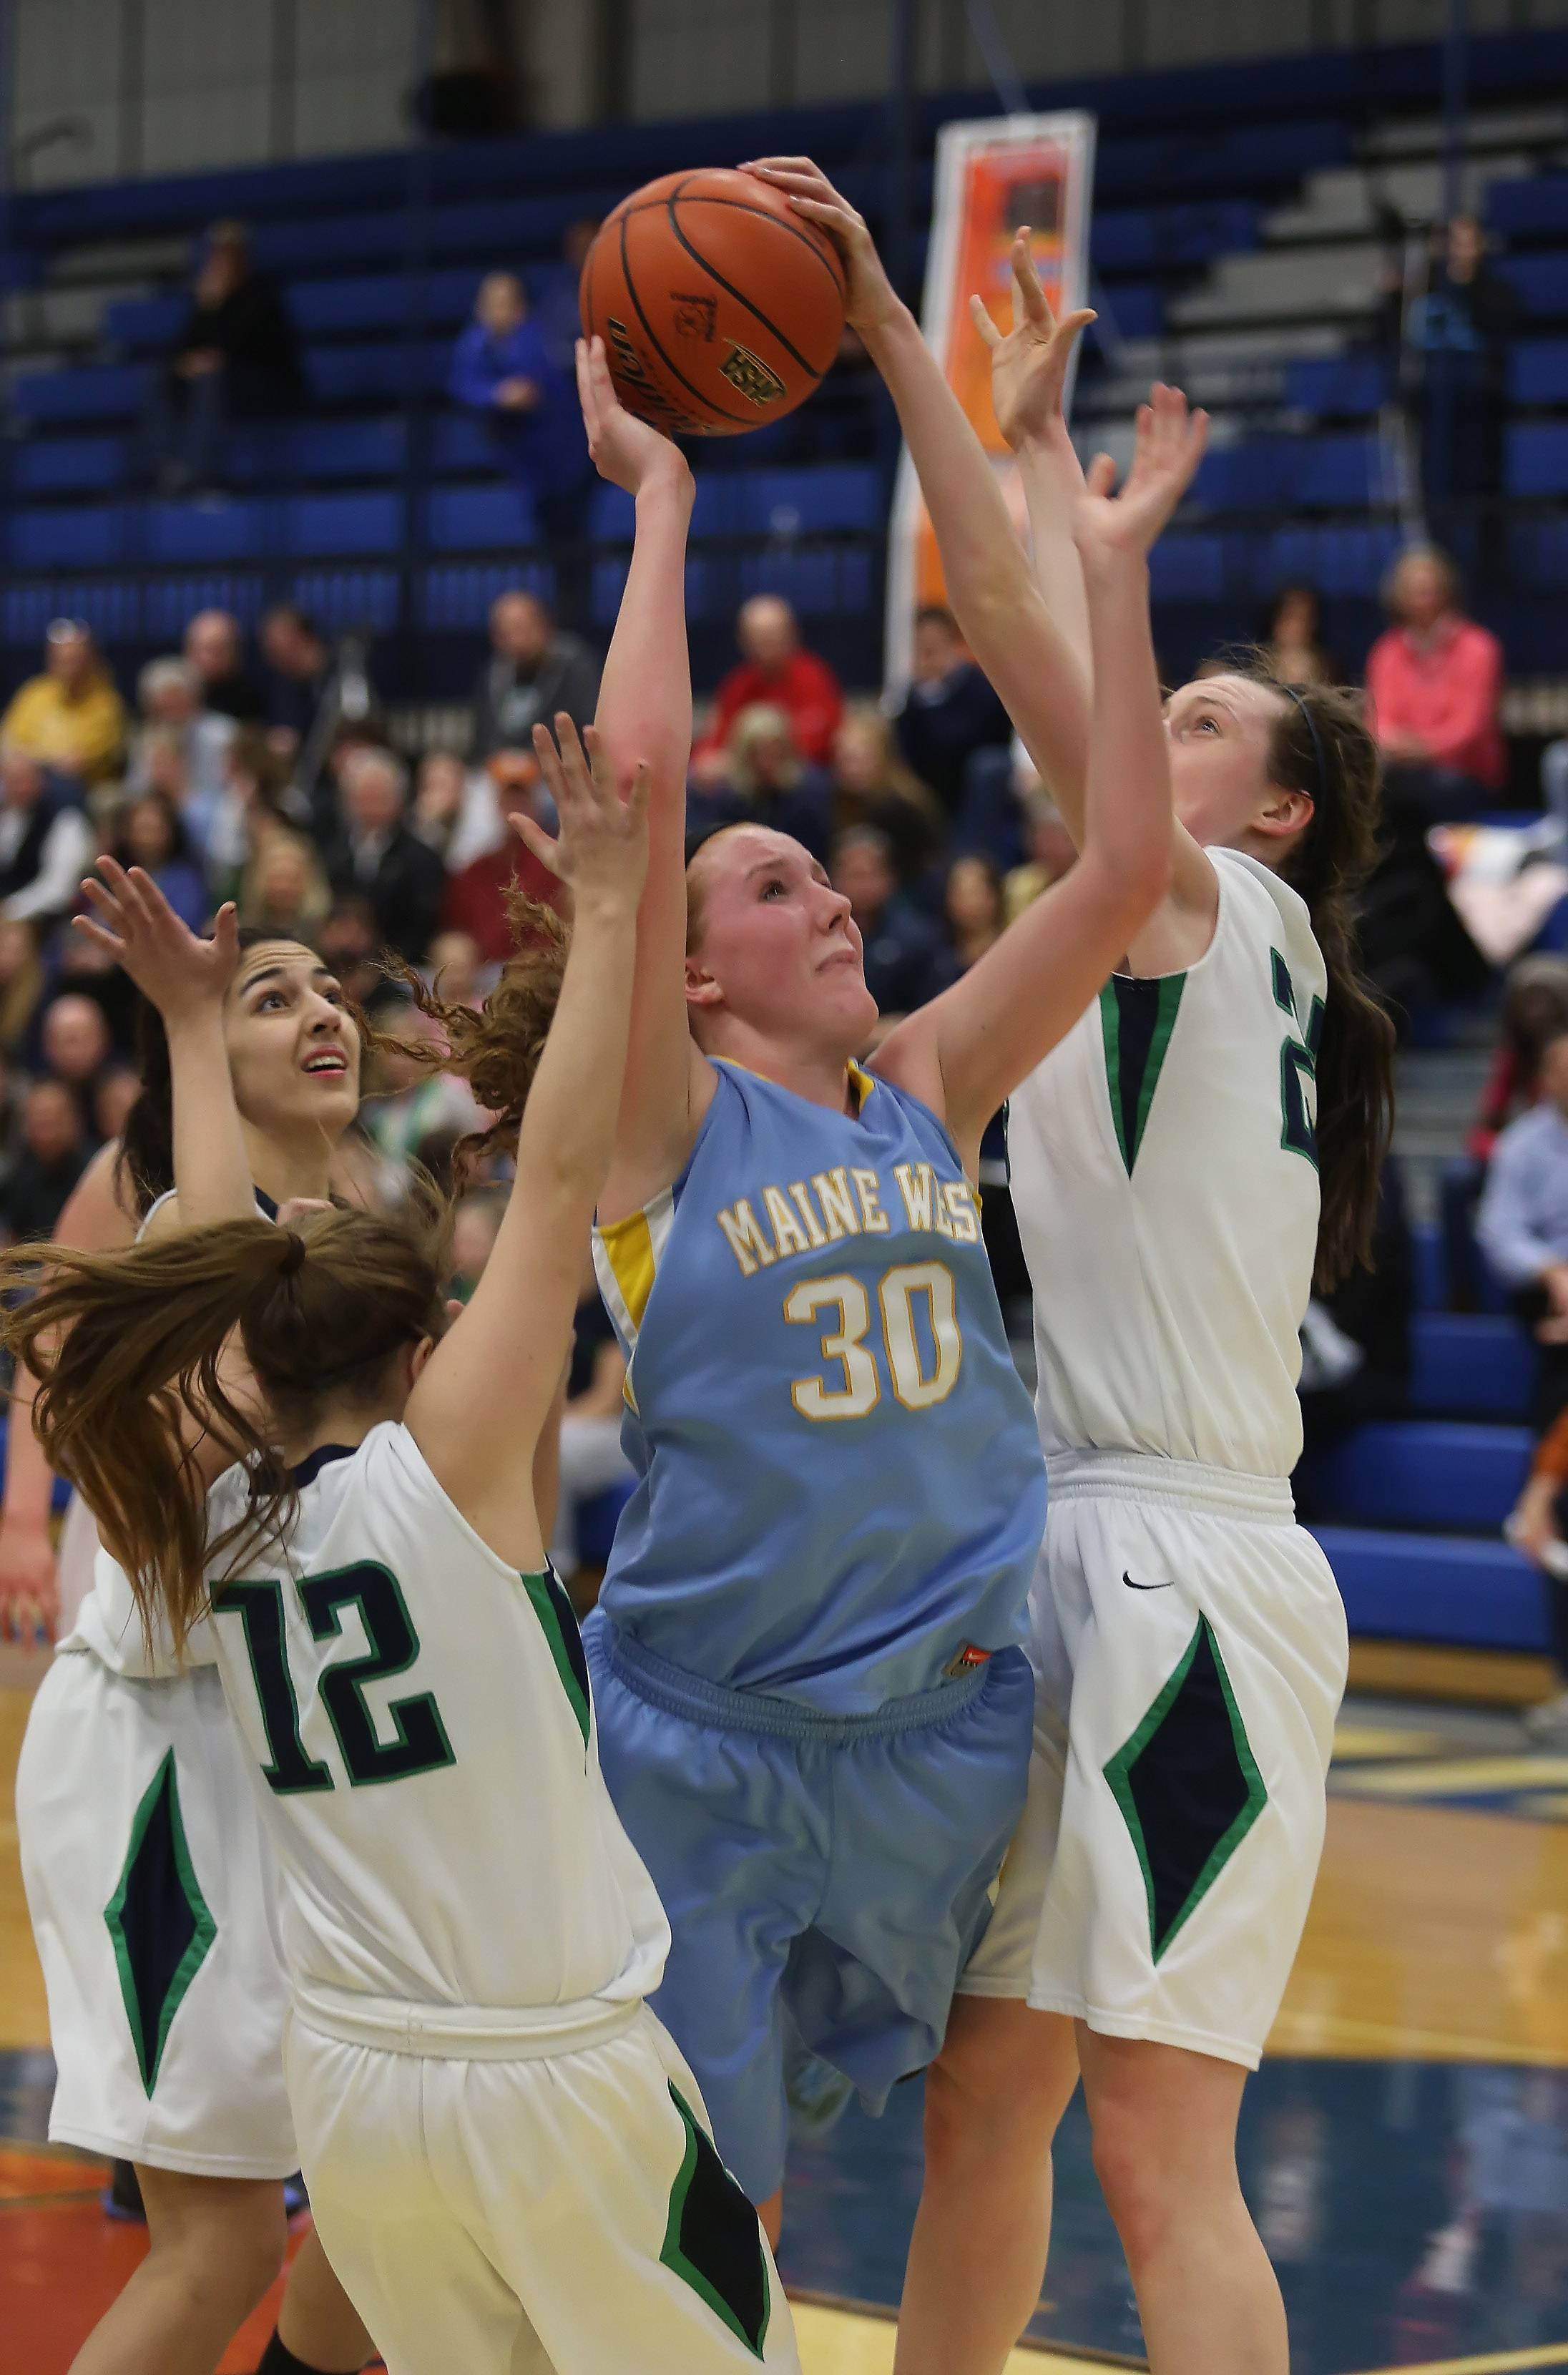 Maine West forward Brittany Collins is fouled by New Trier defenders Megan Neuhaus, left, and Jeanne Boehm .